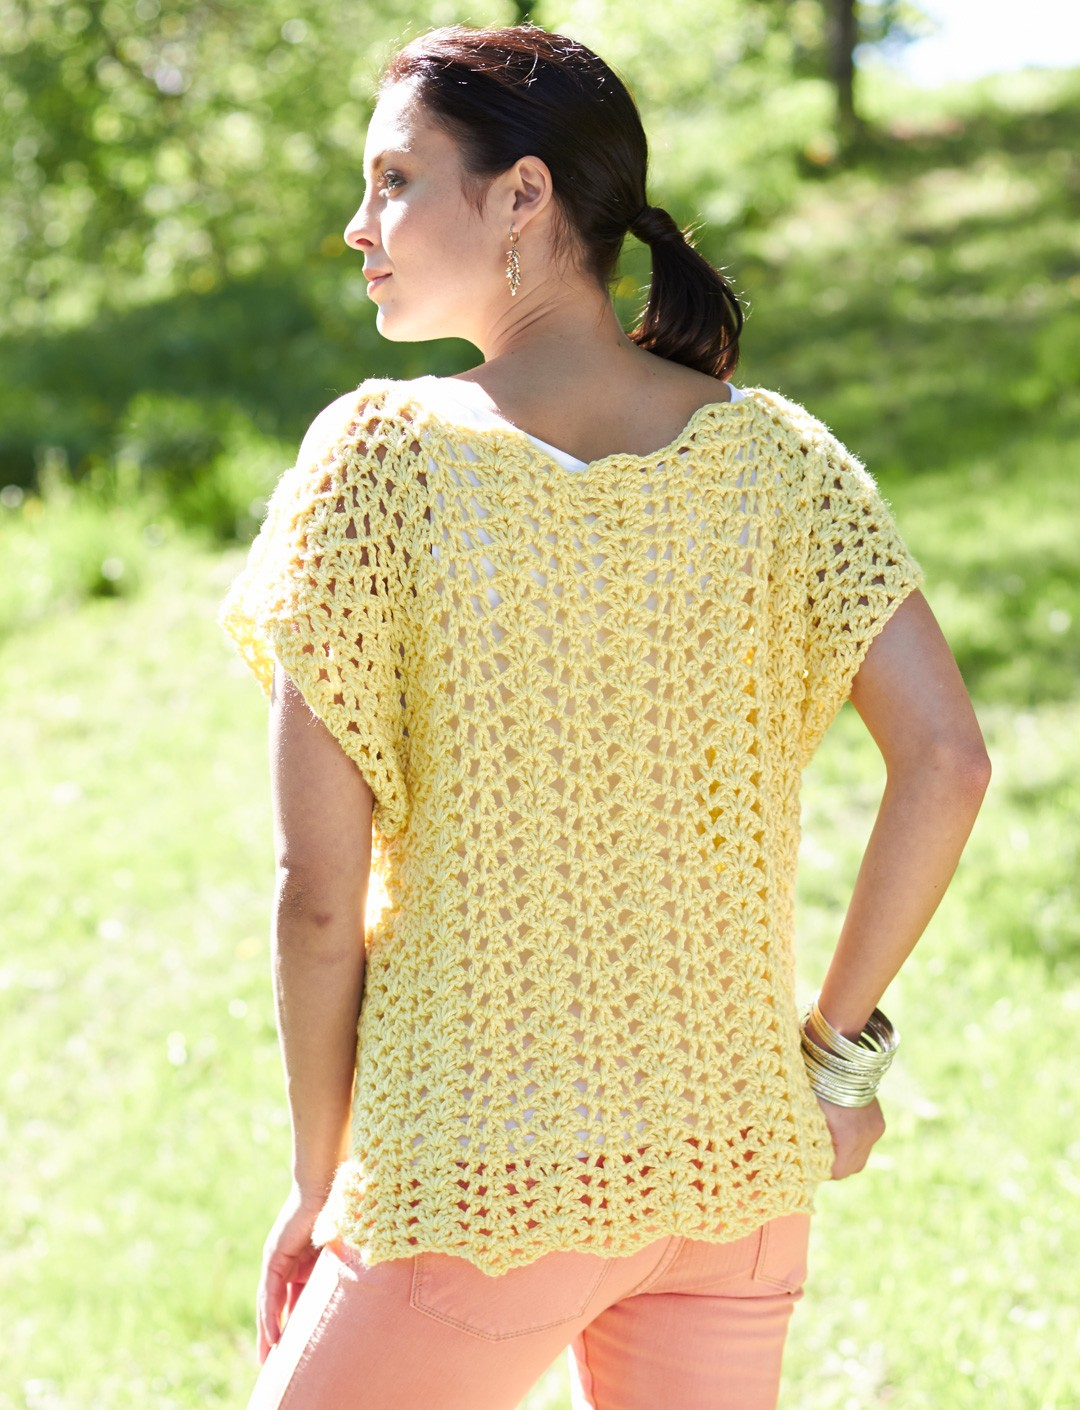 Caron crochet scalloped top crochet pattern yarnspirations crochet scalloped top bankloansurffo Image collections